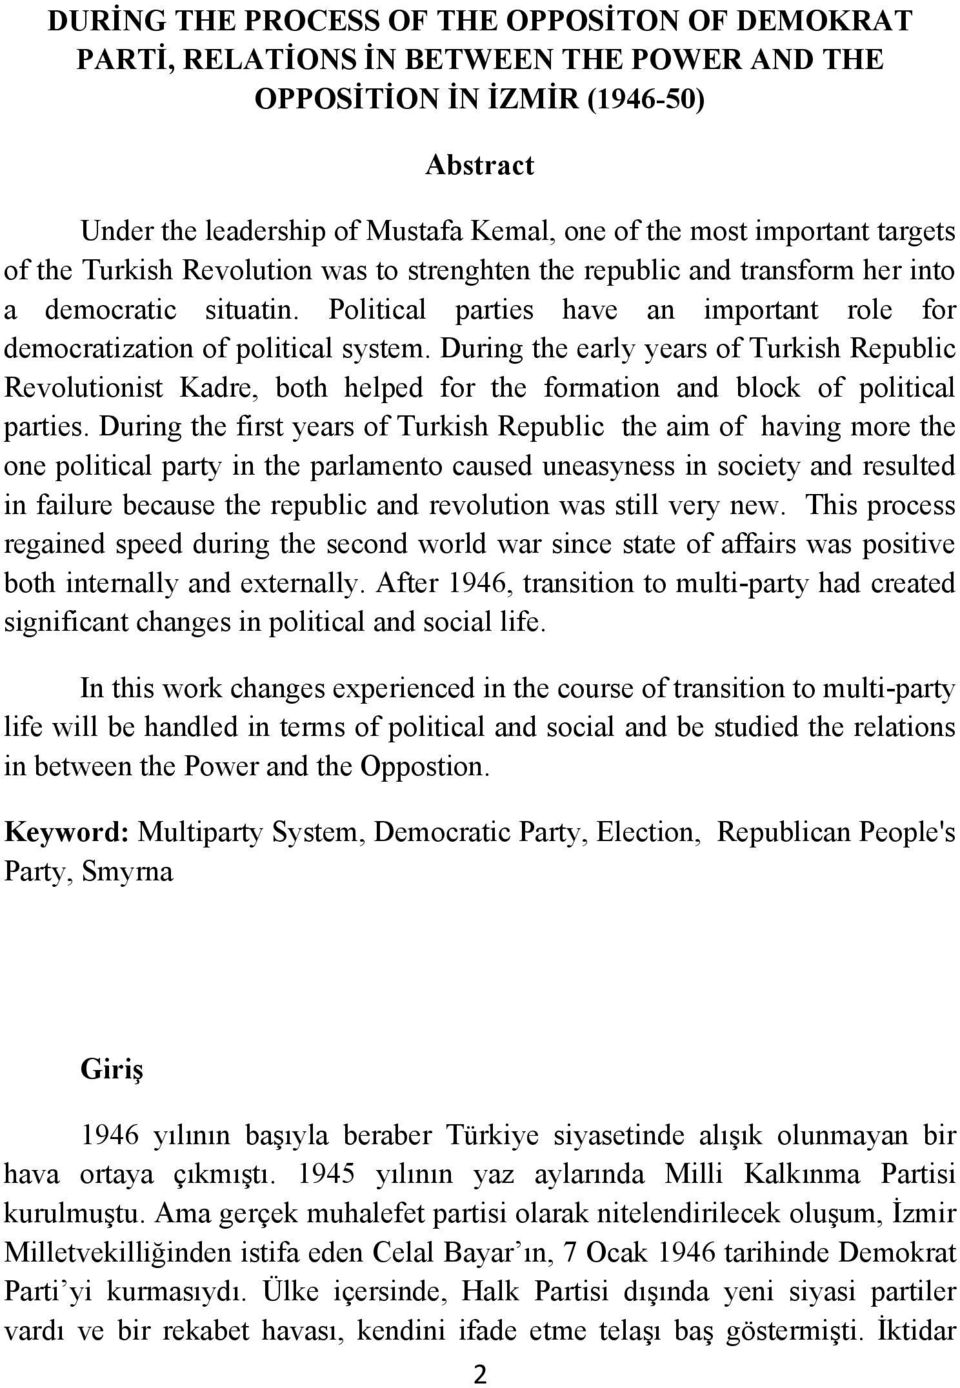 During the early years of Turkish Republic Revolutionist Kadre, both helped for the formation and block of political parties.